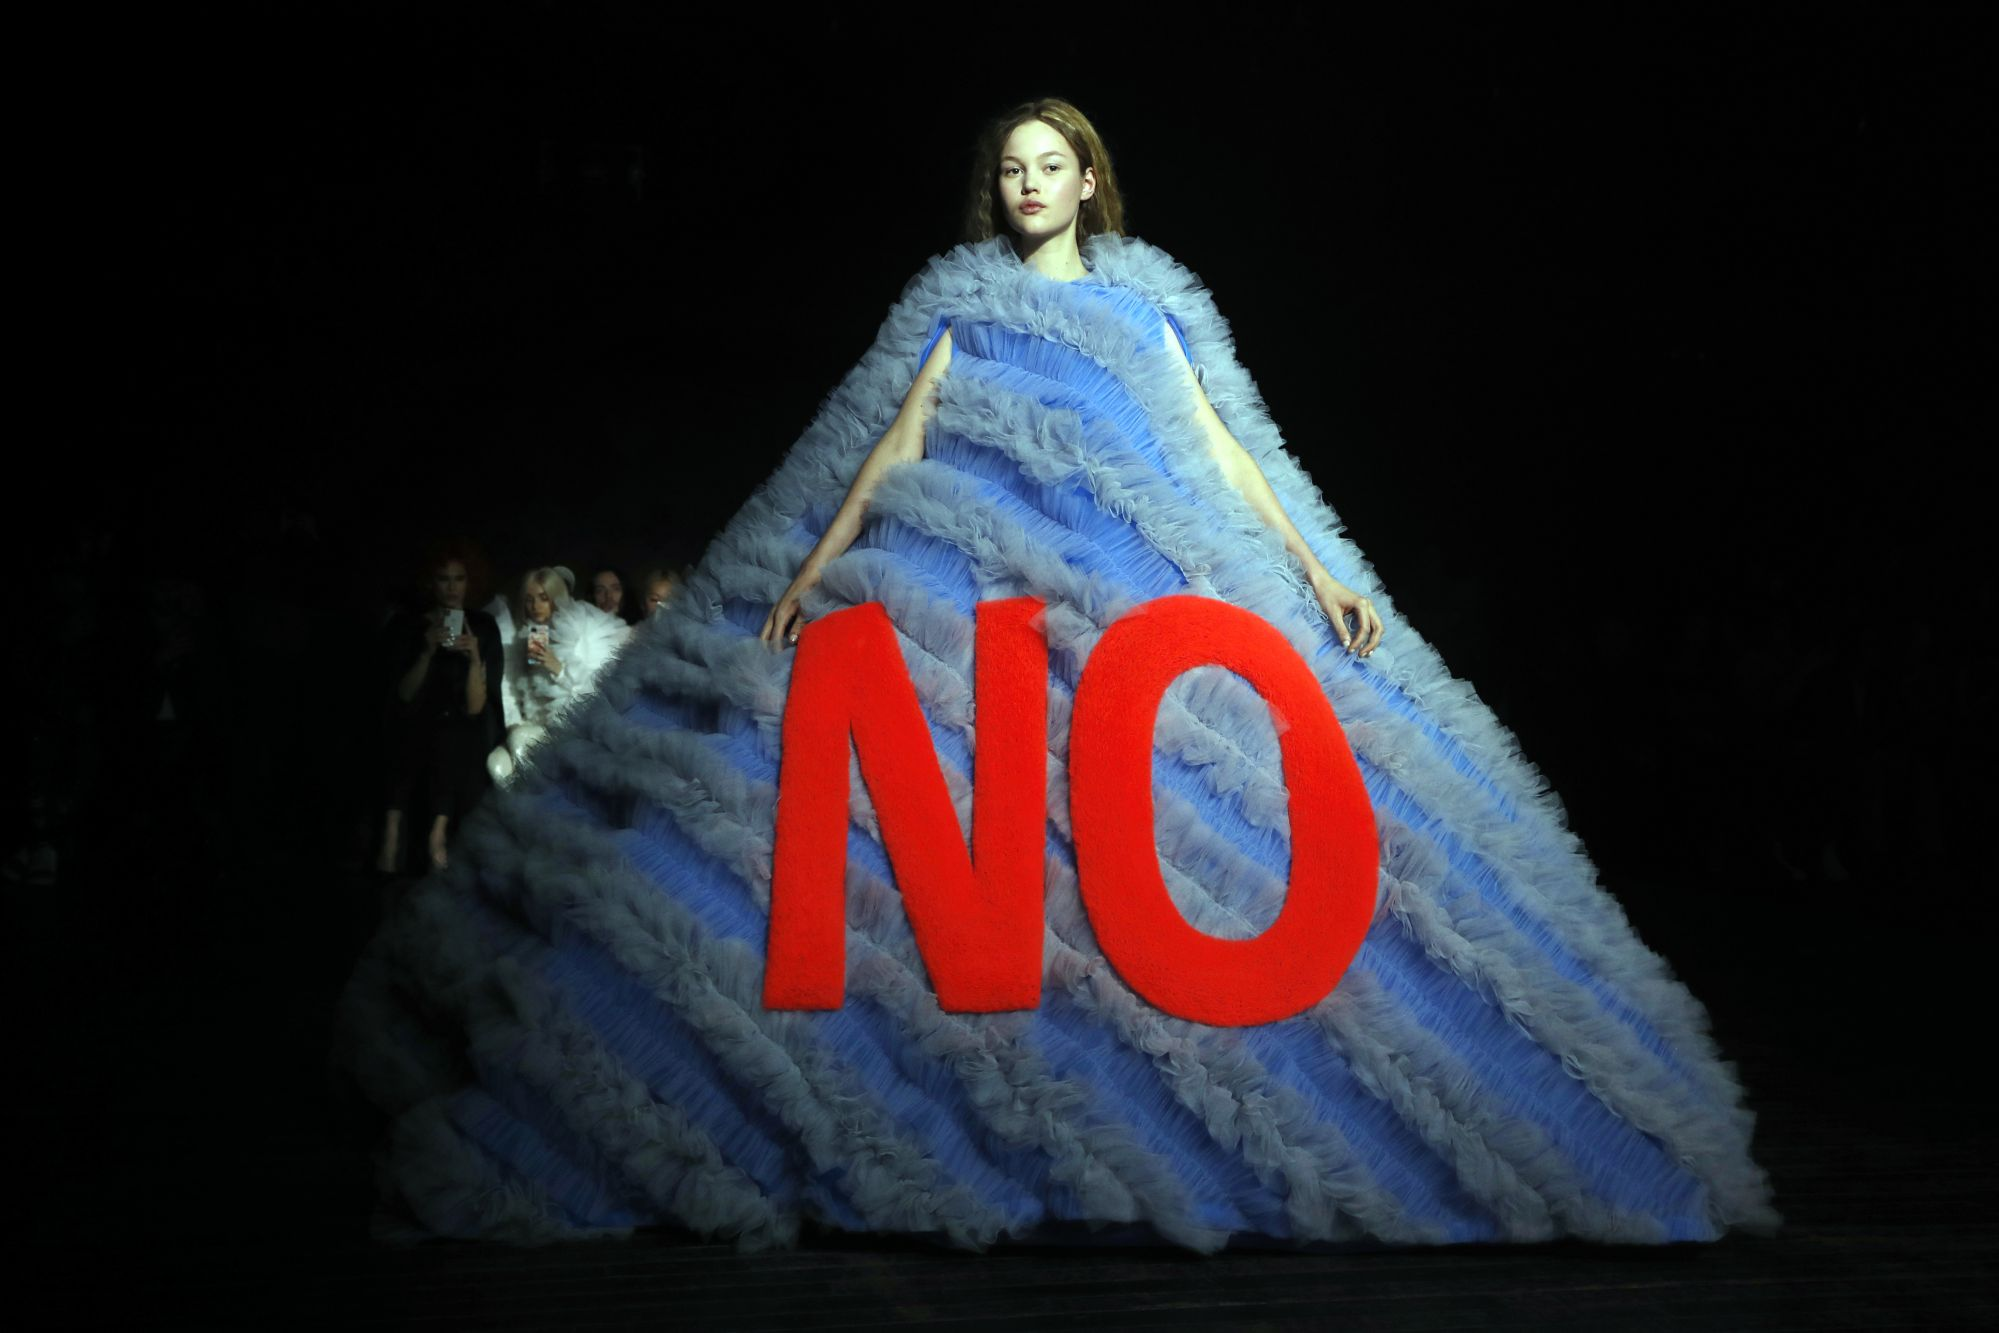 Among the many voluminous and imposing dresses by Viktor & Rolf, one outstandingly poetic creation took the form of a sublime pyramid emblazoned with the word 'No'